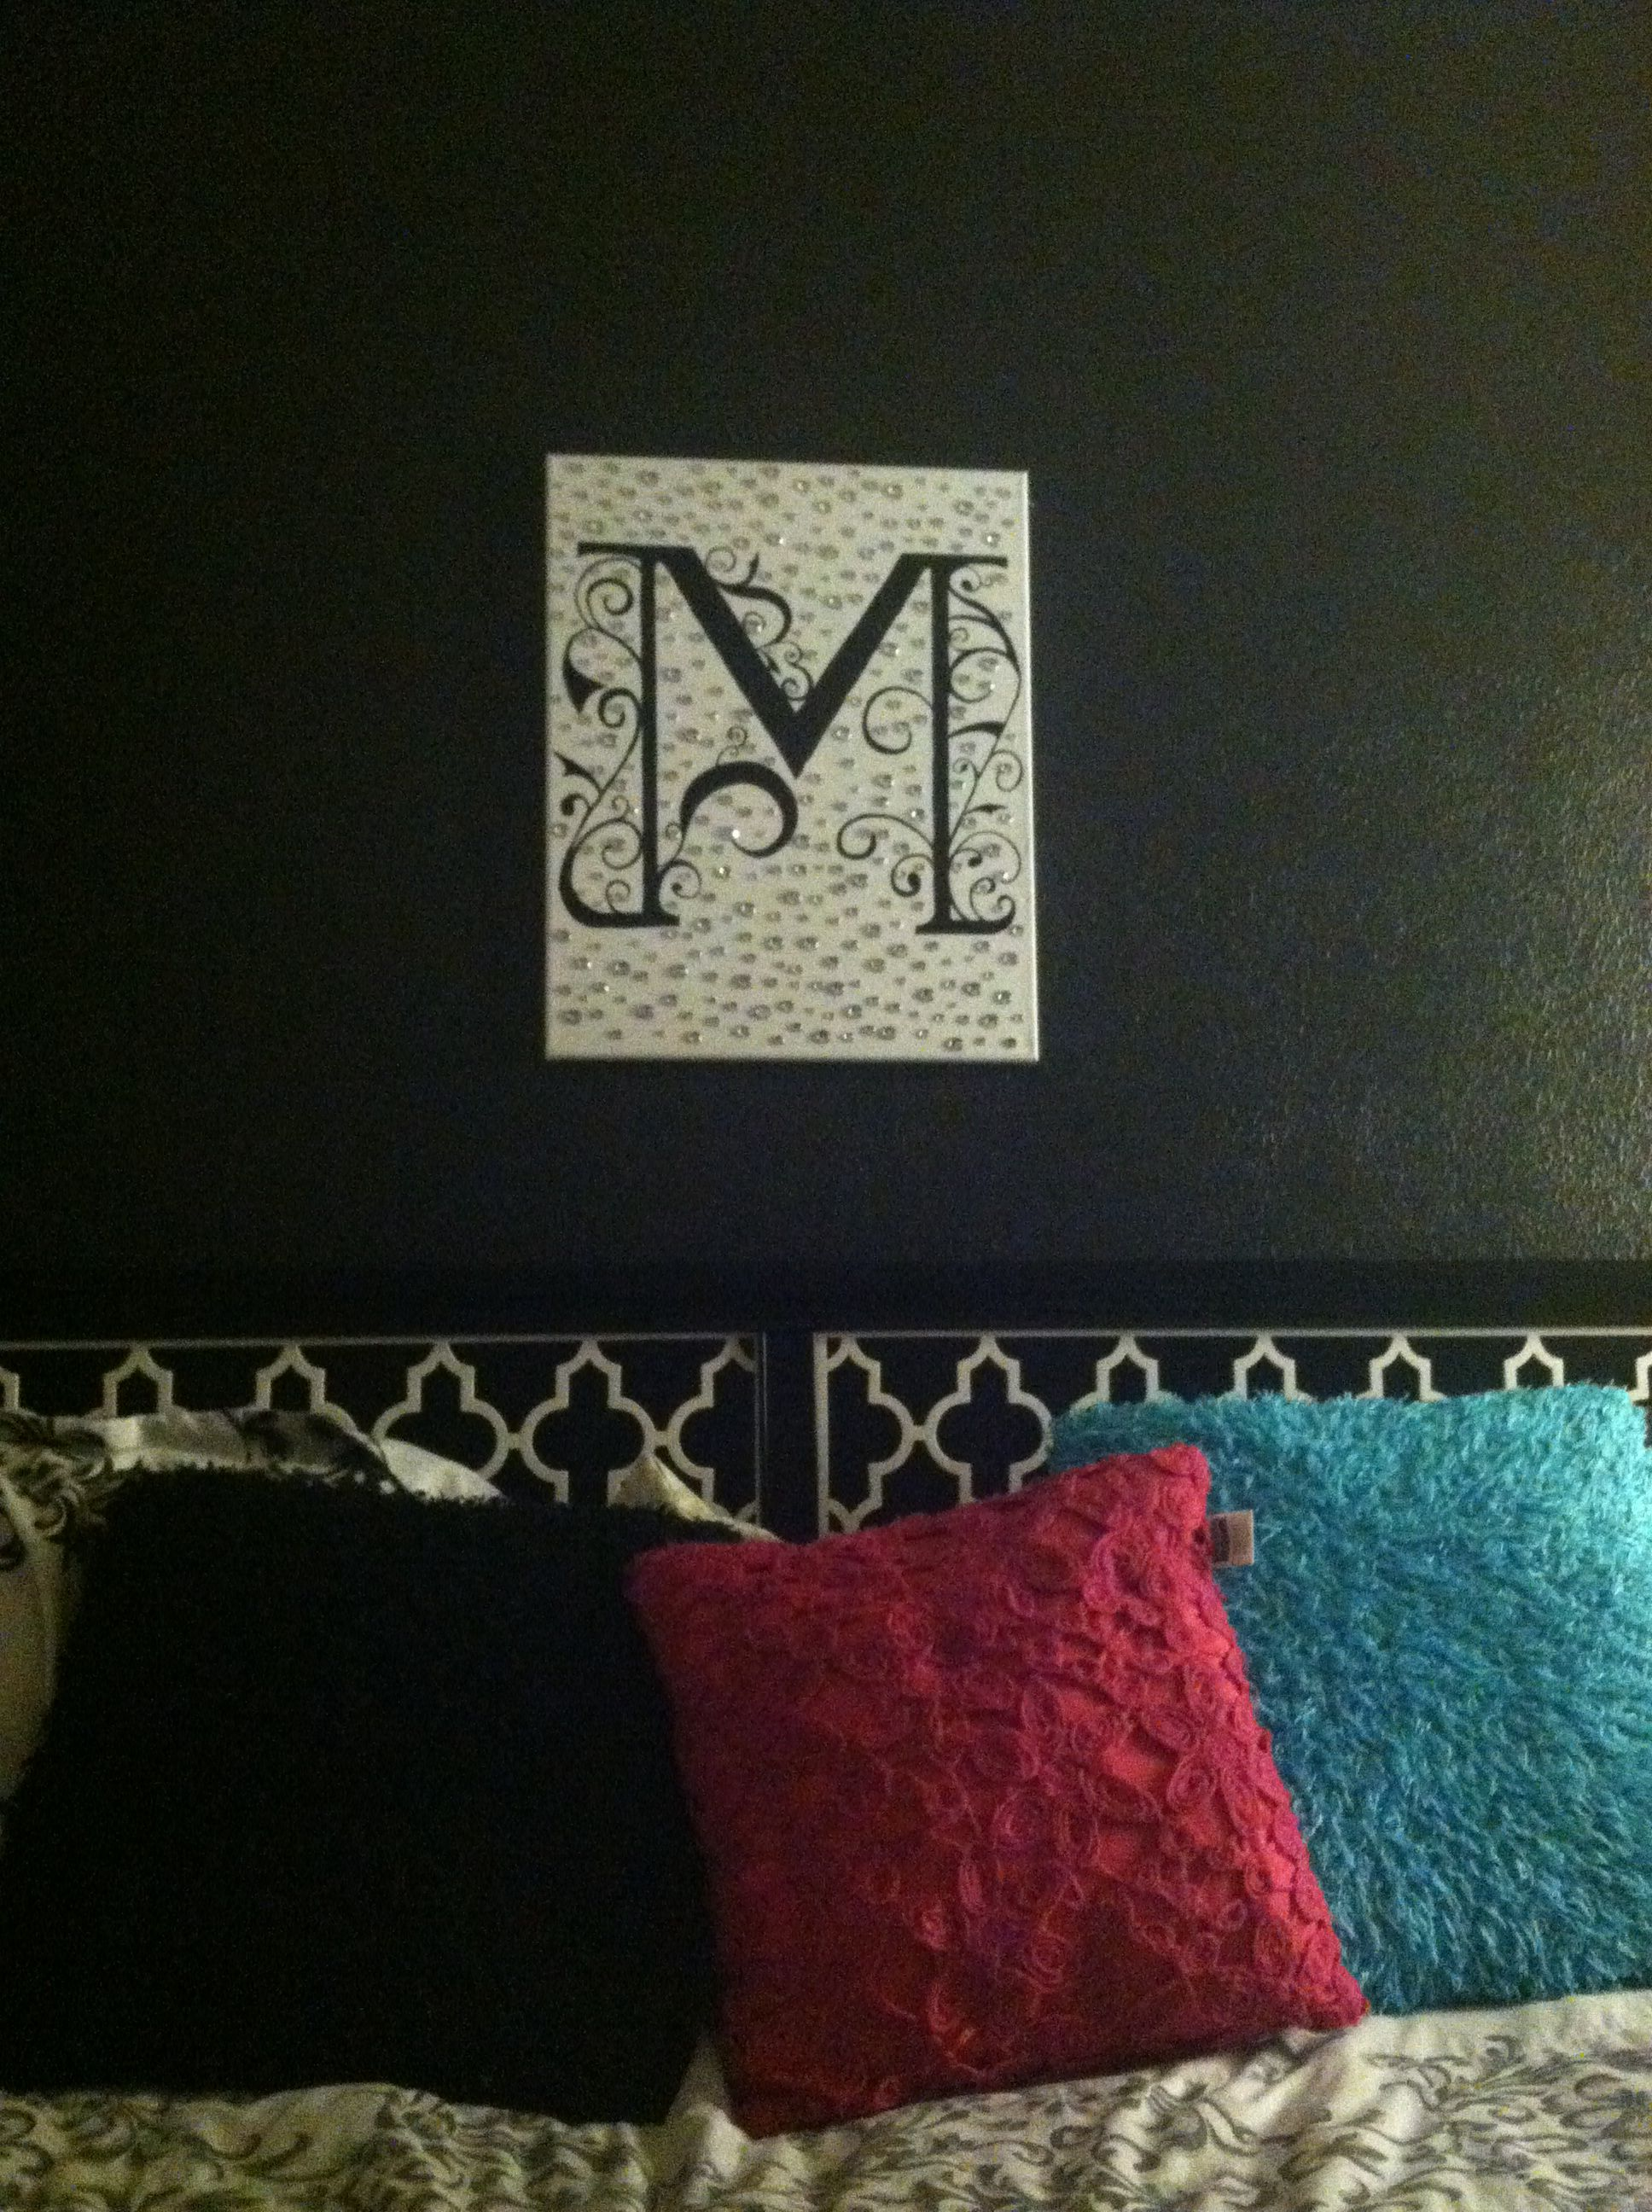 Love this Initial Wall decor above my bed, painted on a white canvas covered in rhinestones  I got creative today!